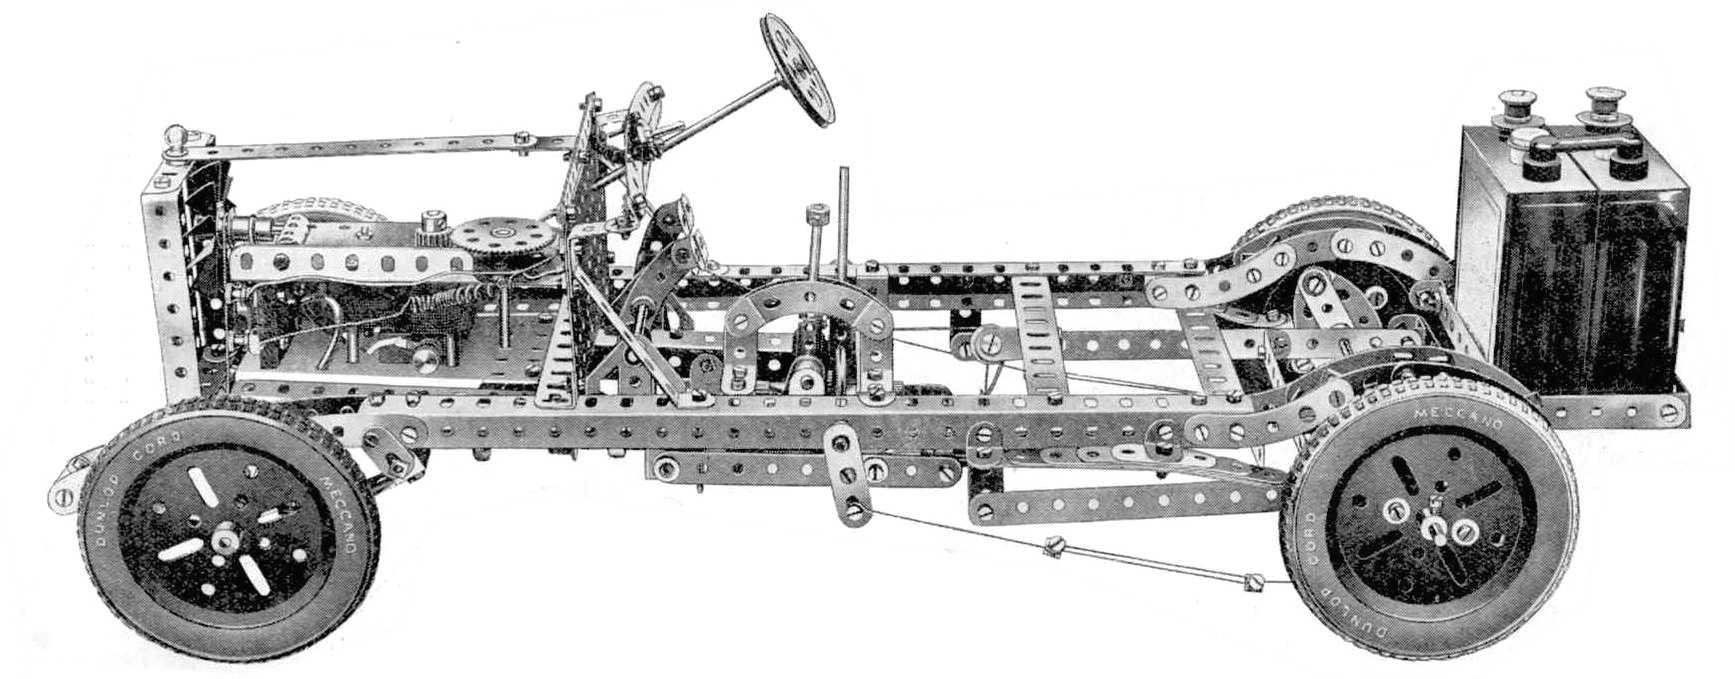 List Of Synonyms And Antonyms Of The Word Meccano Manuals